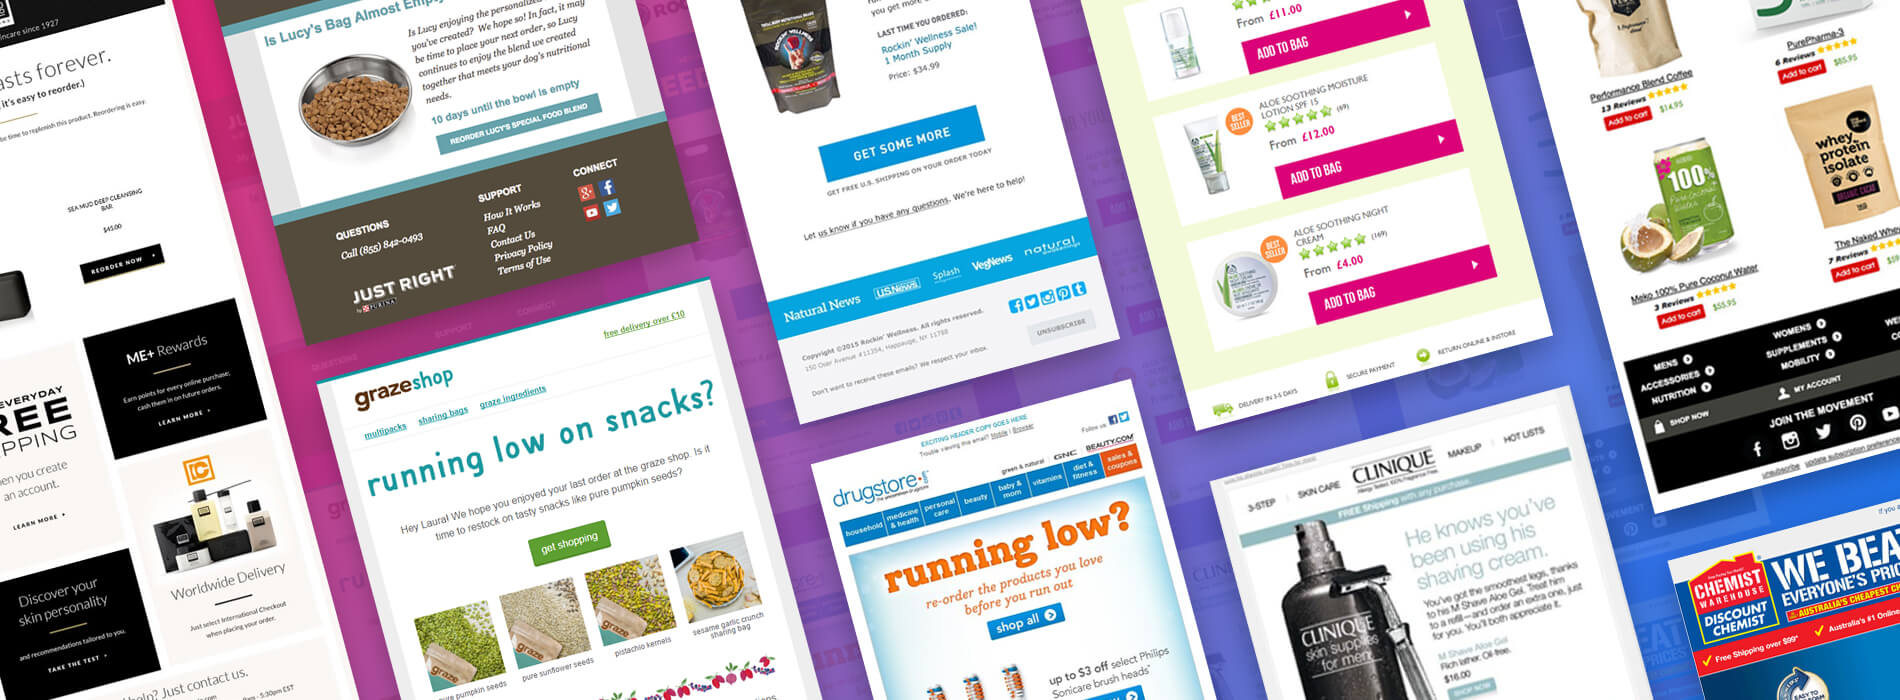 11 Examples of Replenishment Emails from Retailers